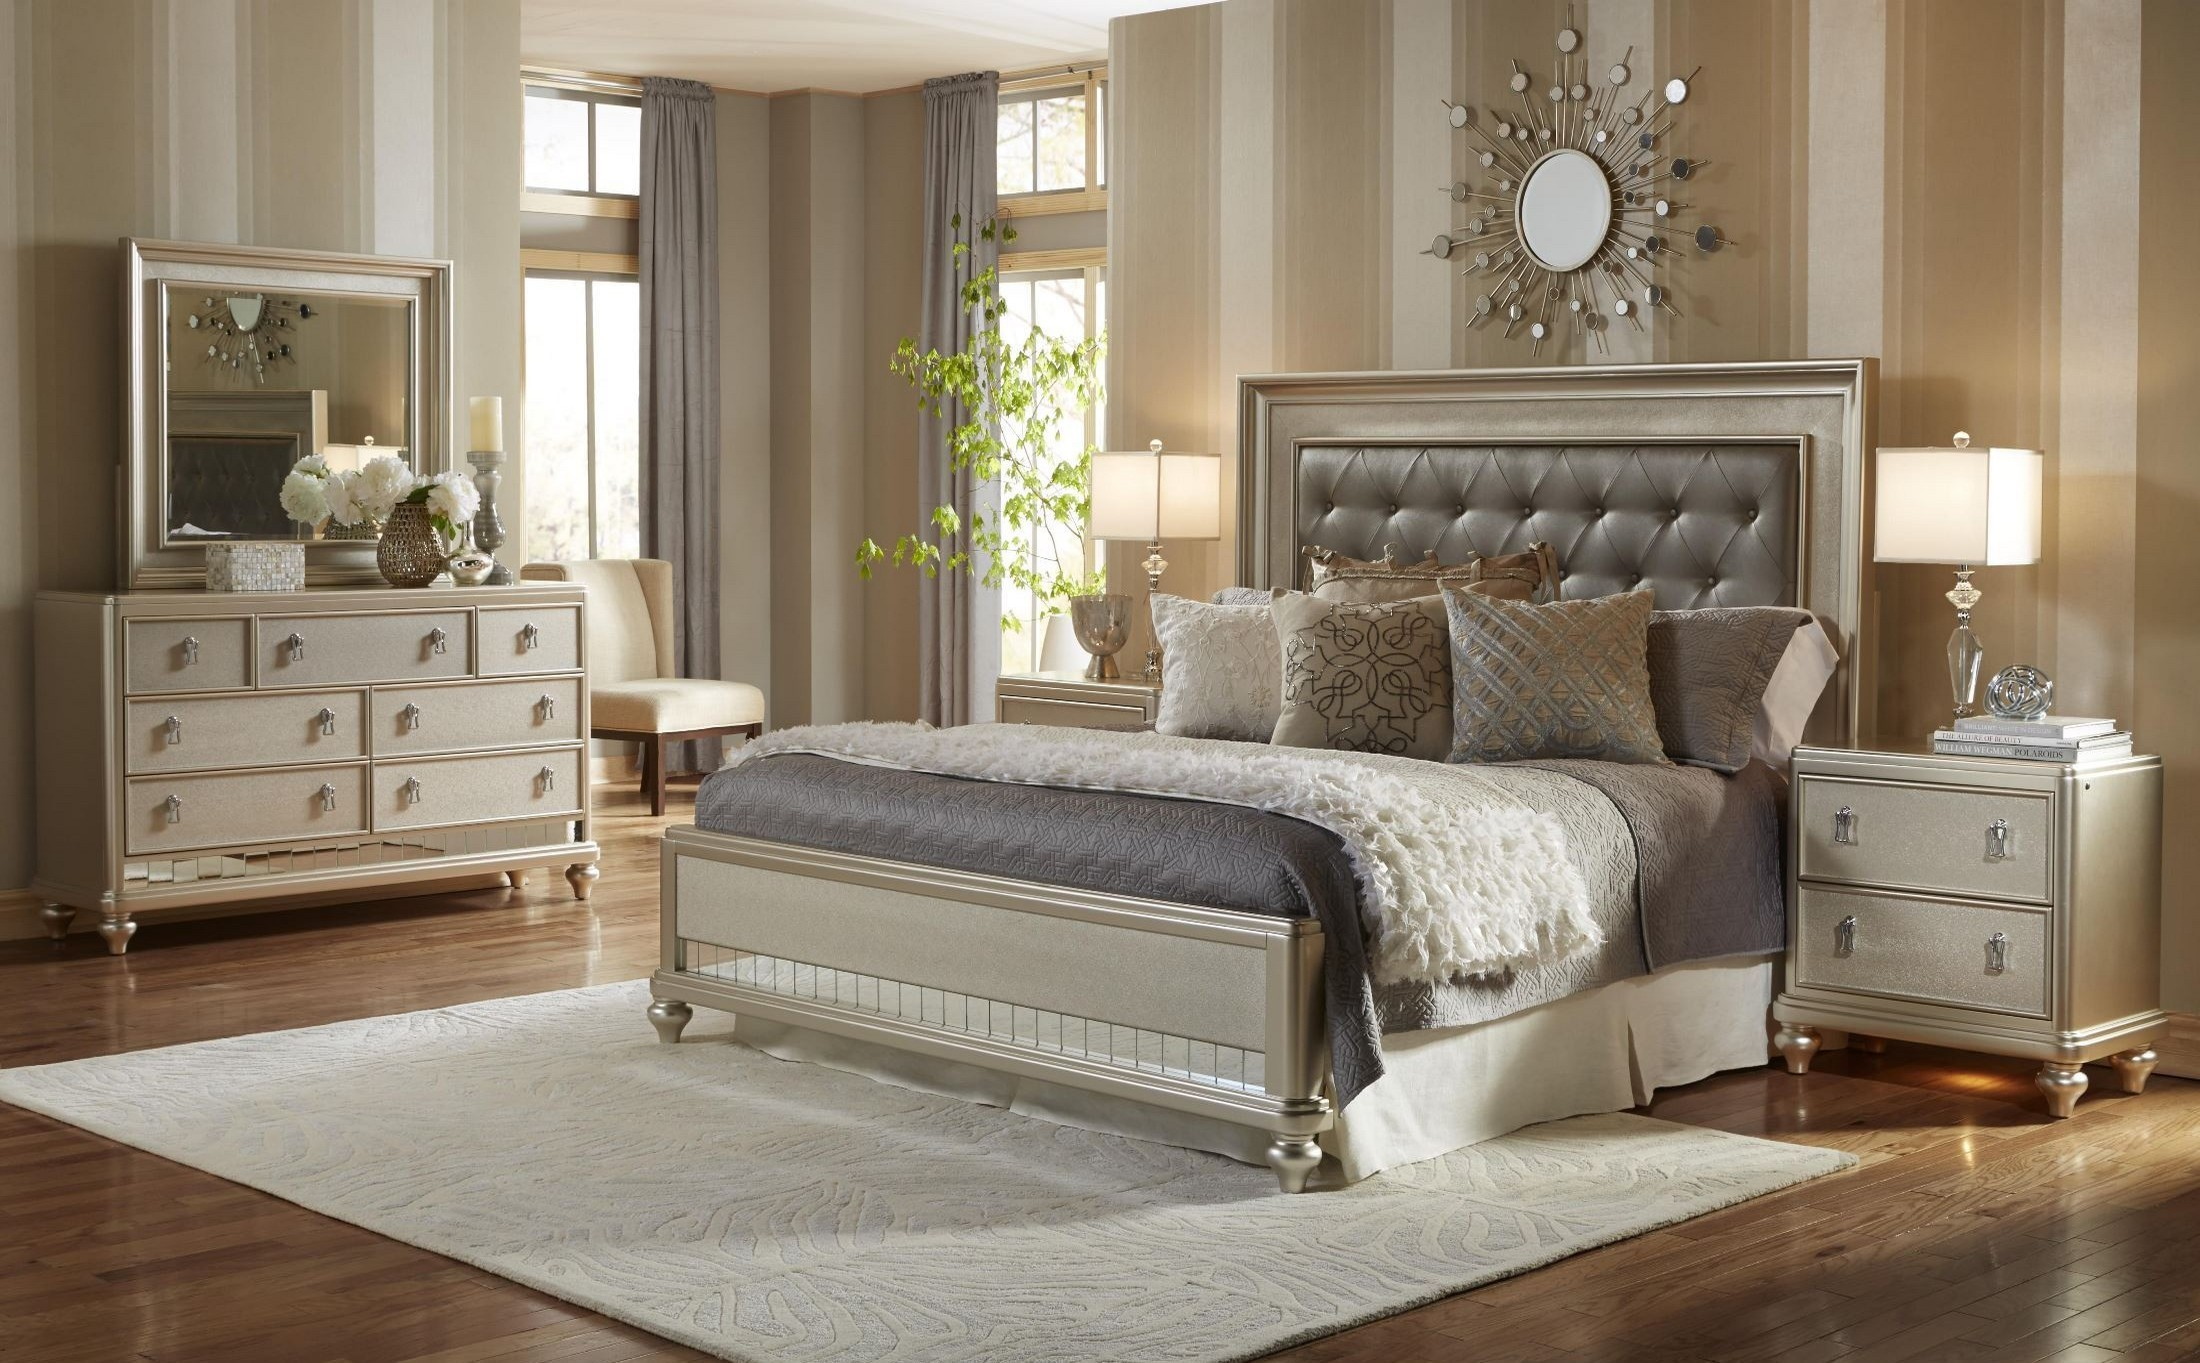 Diva Panel Bedroom Set From Samuel Lawrence (8808-255-257-400)